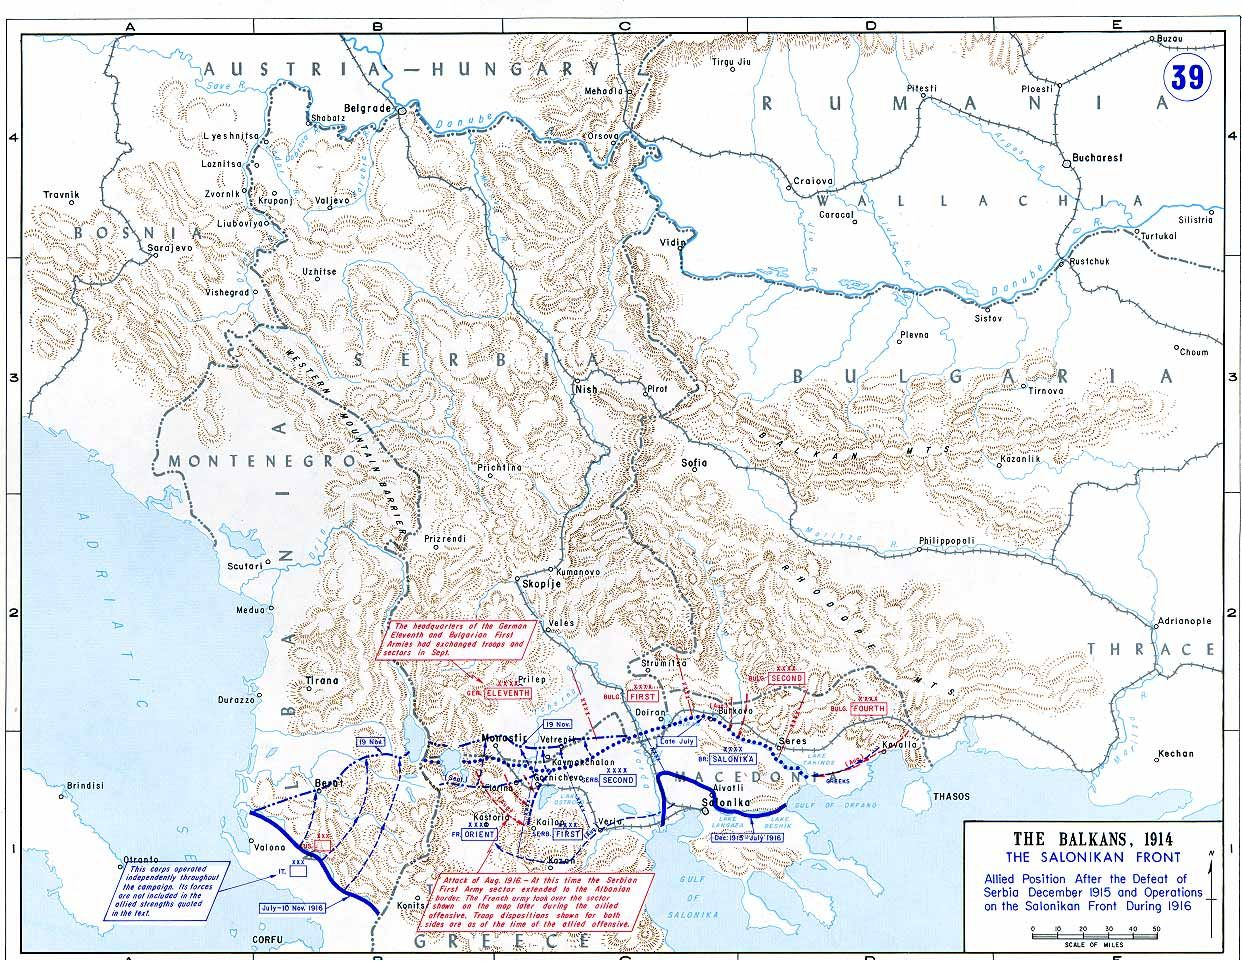 Balkan Salonikan front after the defeat of Serbia 1915 and